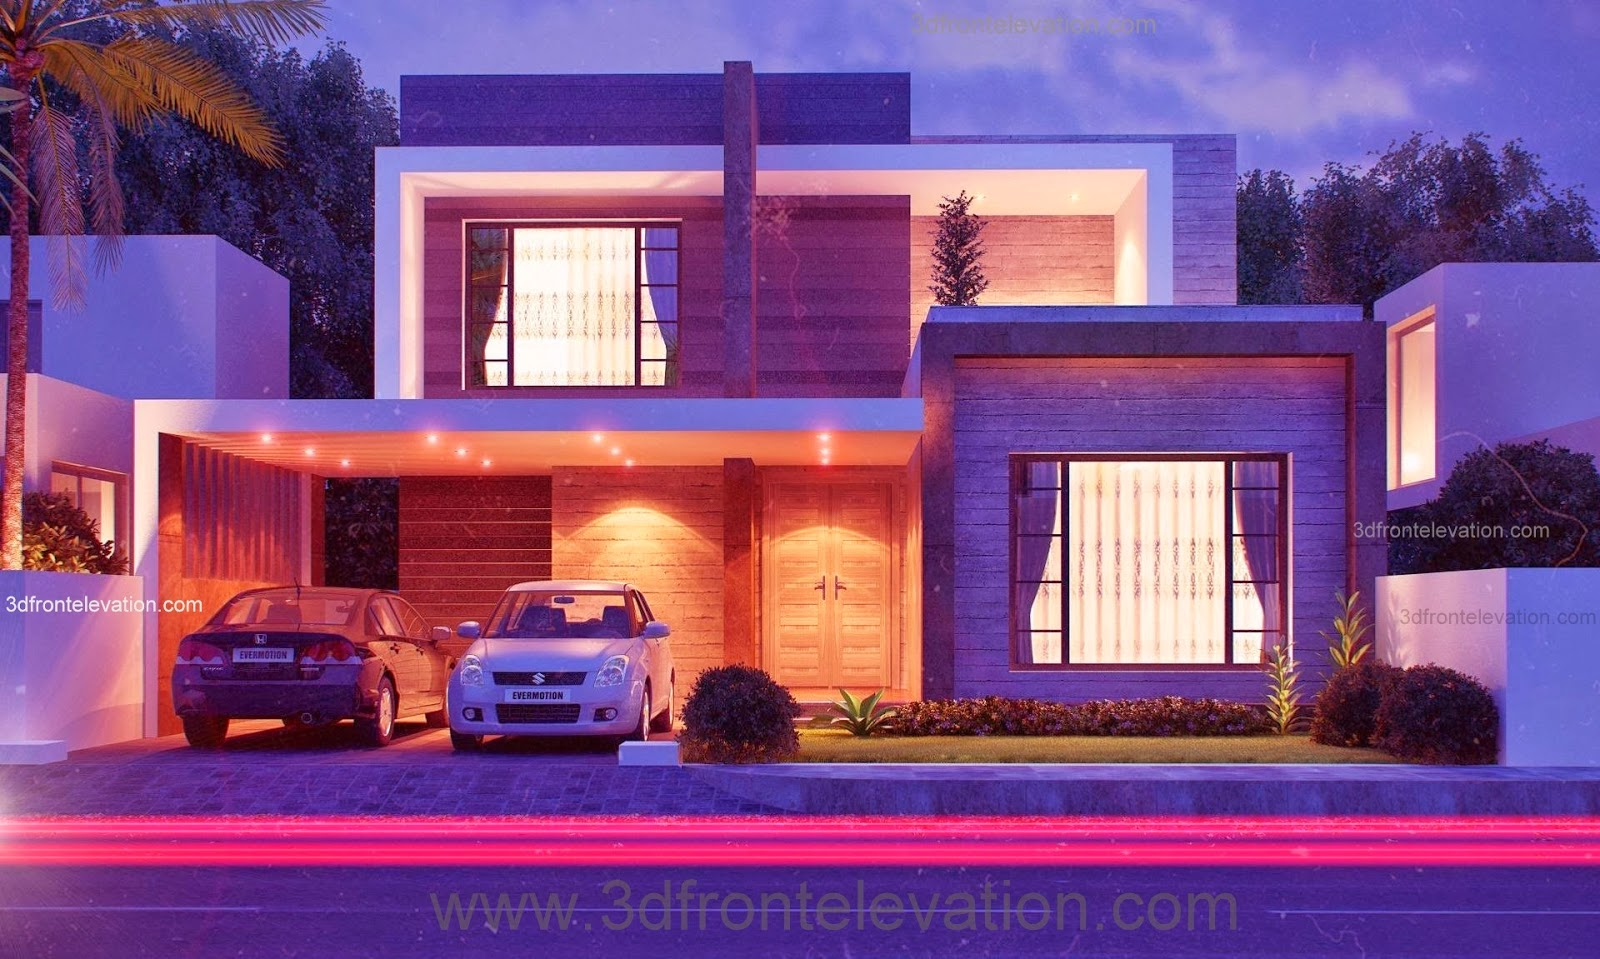 10 marla Modern HOuse frontElevation Rawalpindi